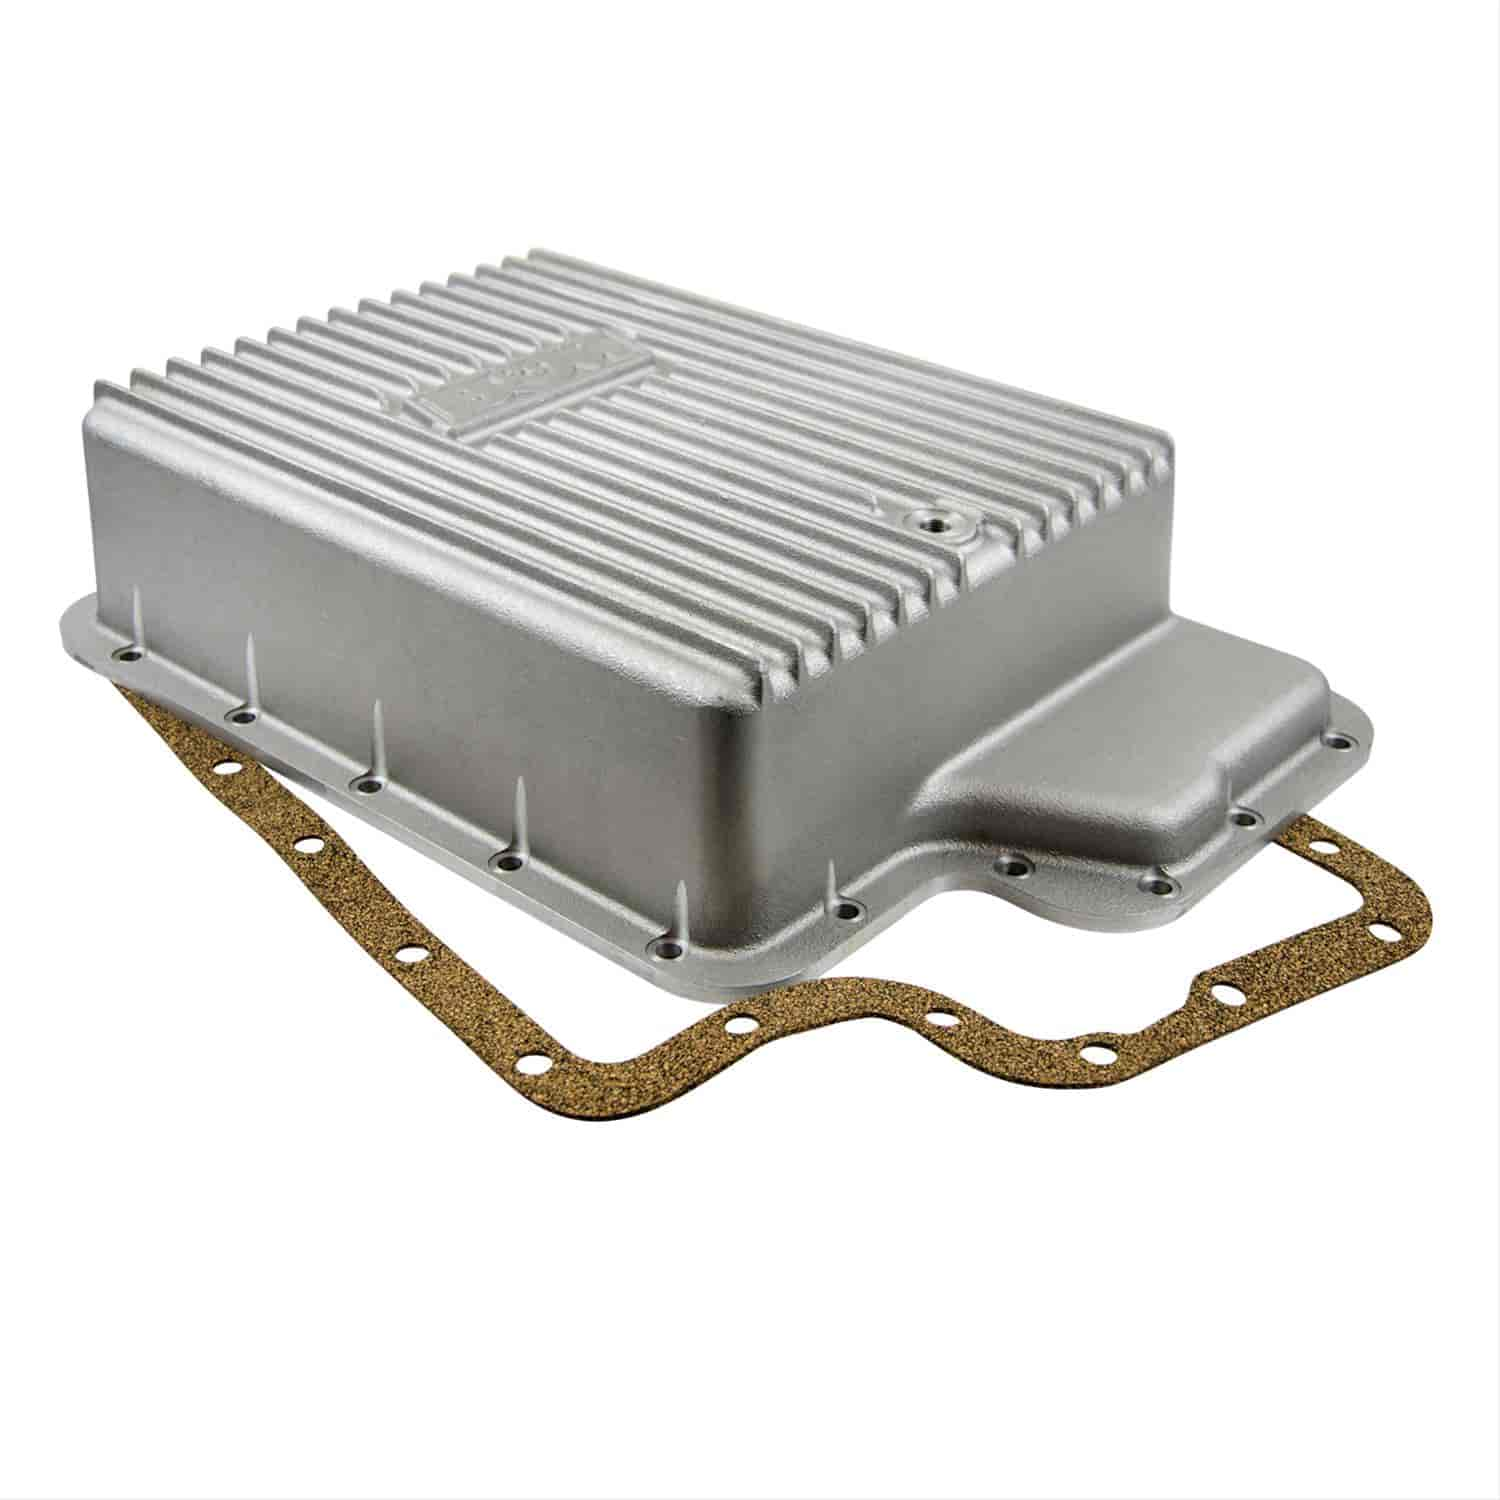 Bm 40295 cast aluminum deep transmission pan ford e4od5r1004r100 bm 40295 cast aluminum deep transmission pan ford e4od5r1004r100 w torque shift 5 speed jegs fandeluxe Choice Image